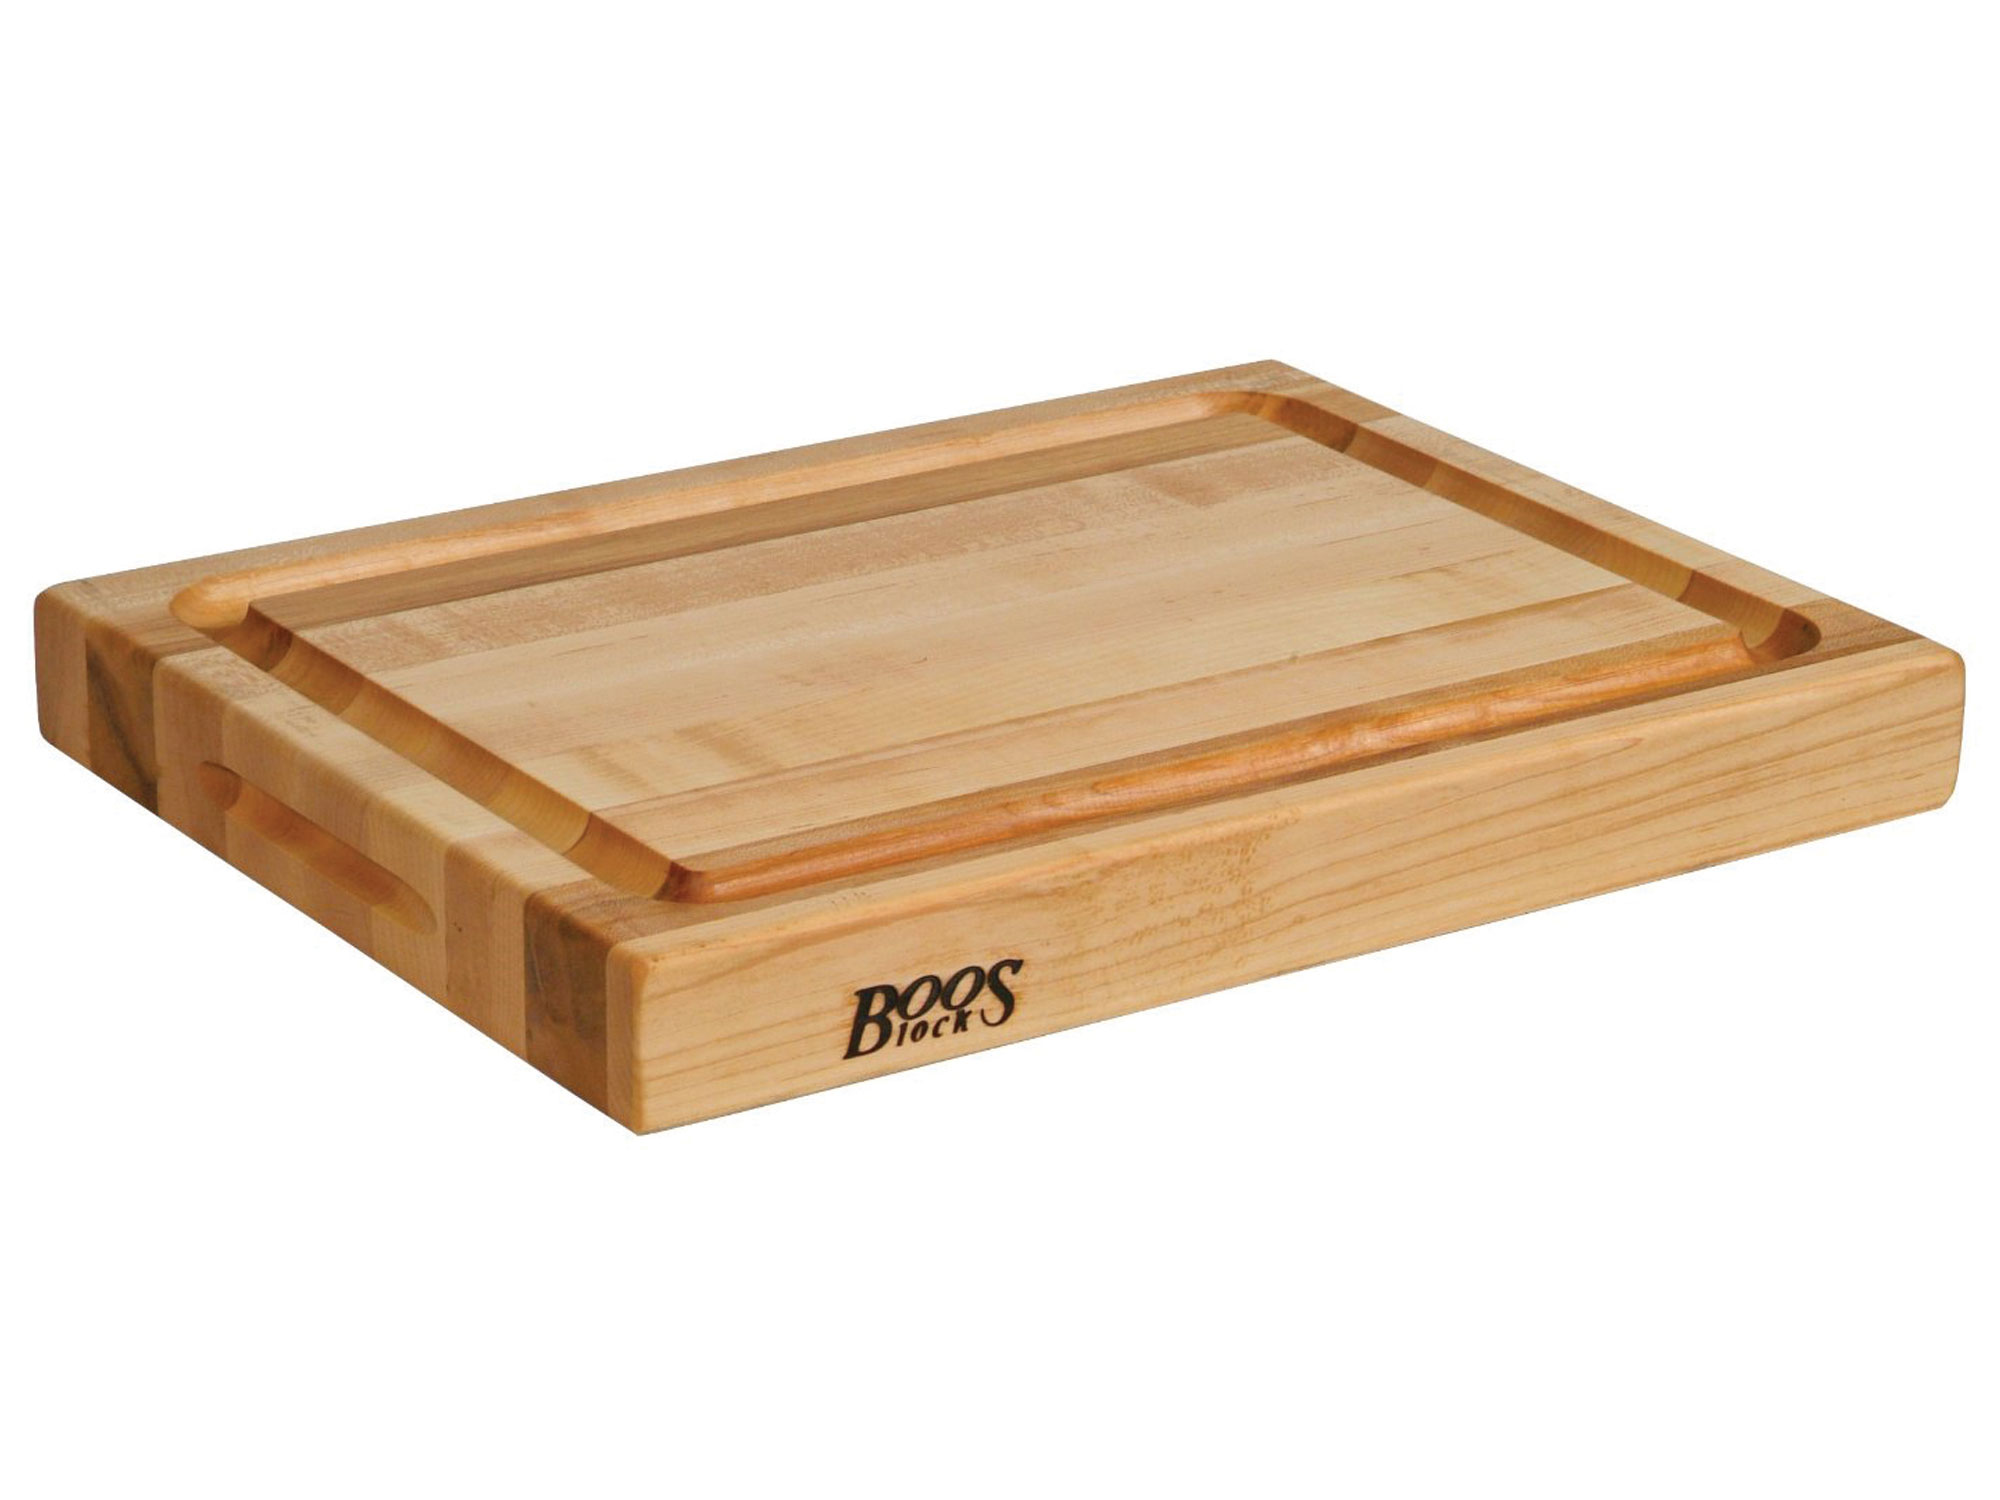 John boos edge grain maple cutting board with groove